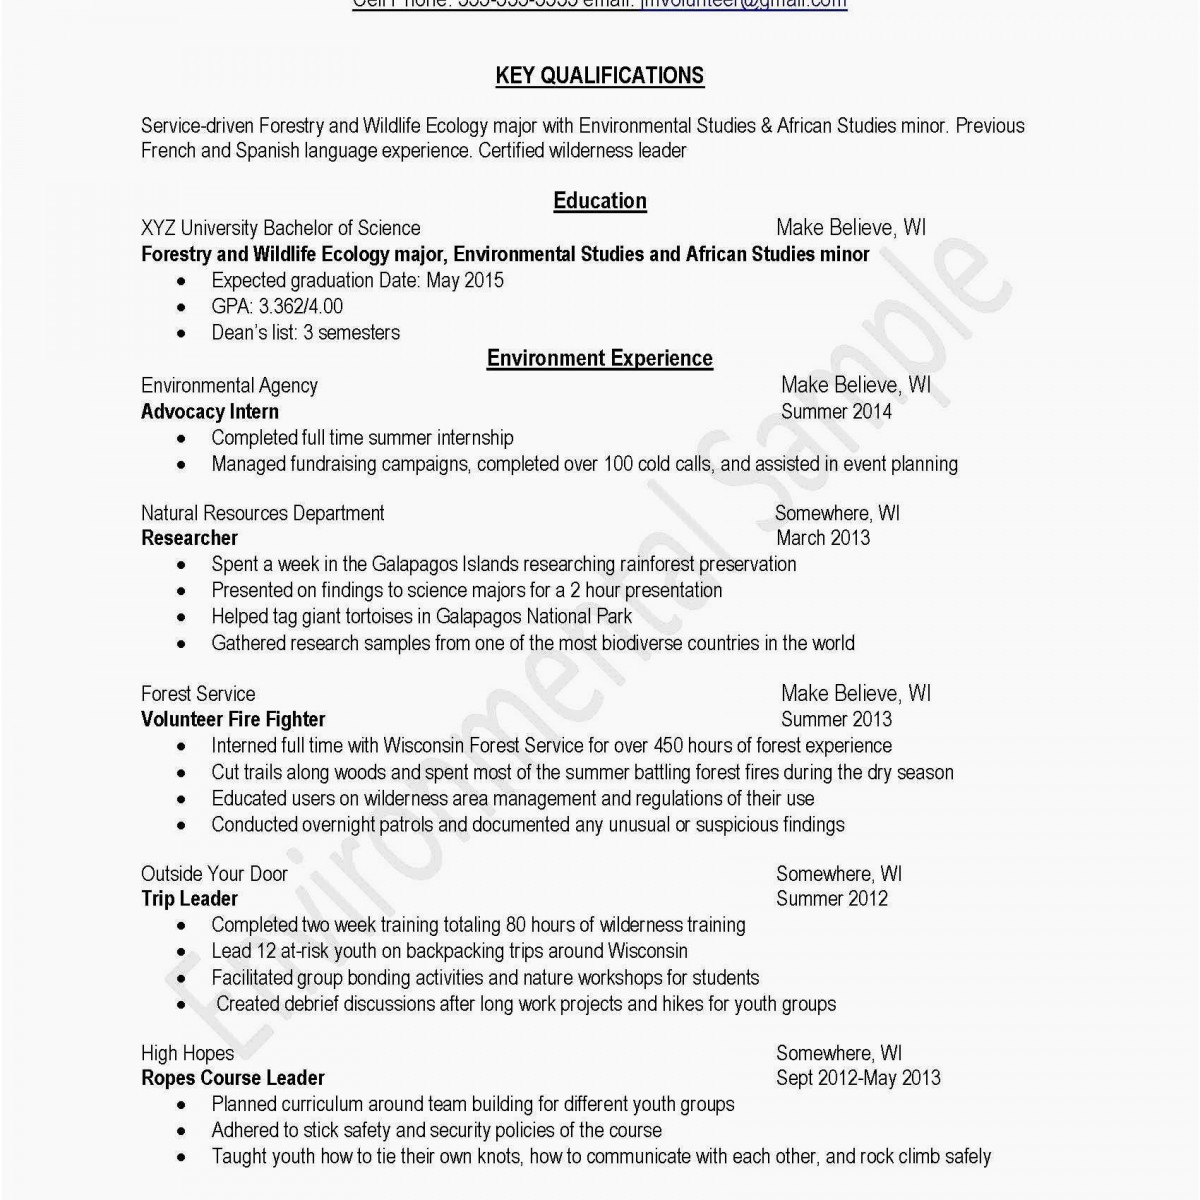 Free Resume Templates - Basic Resume Template Cute Awesome Examples Resumes Ecologist Resume